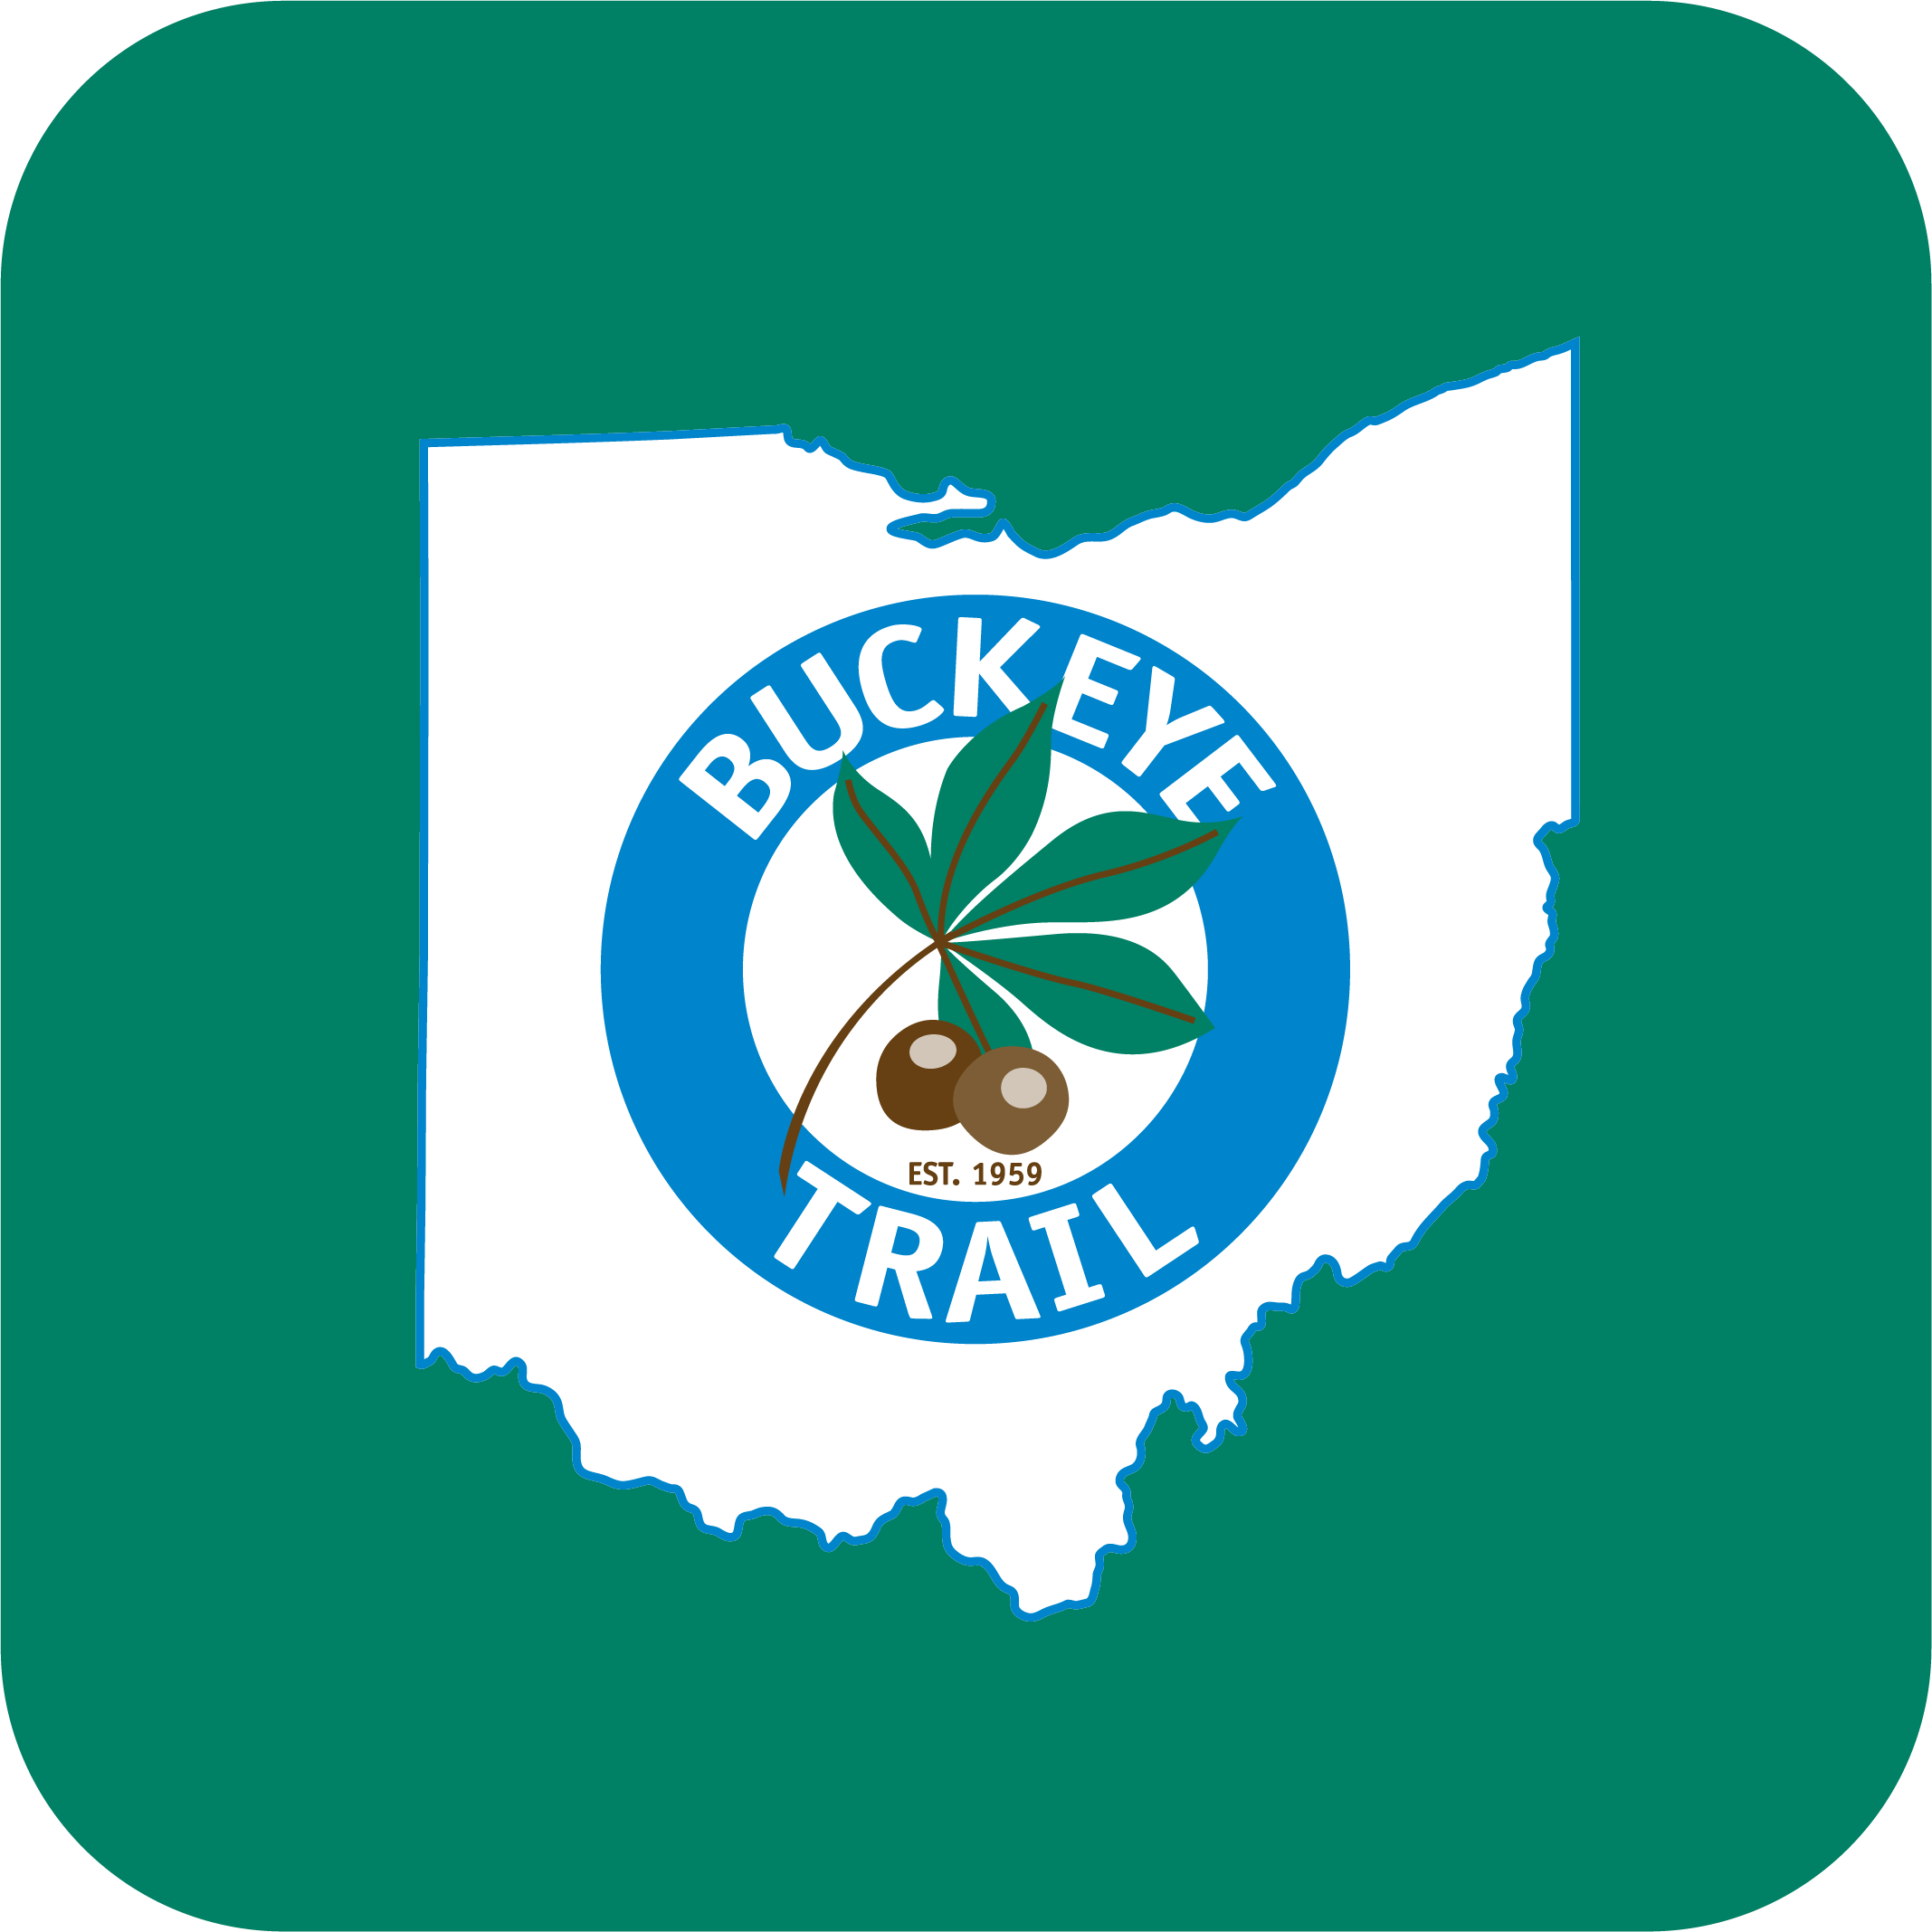 App icon for the Buckeye Trail.